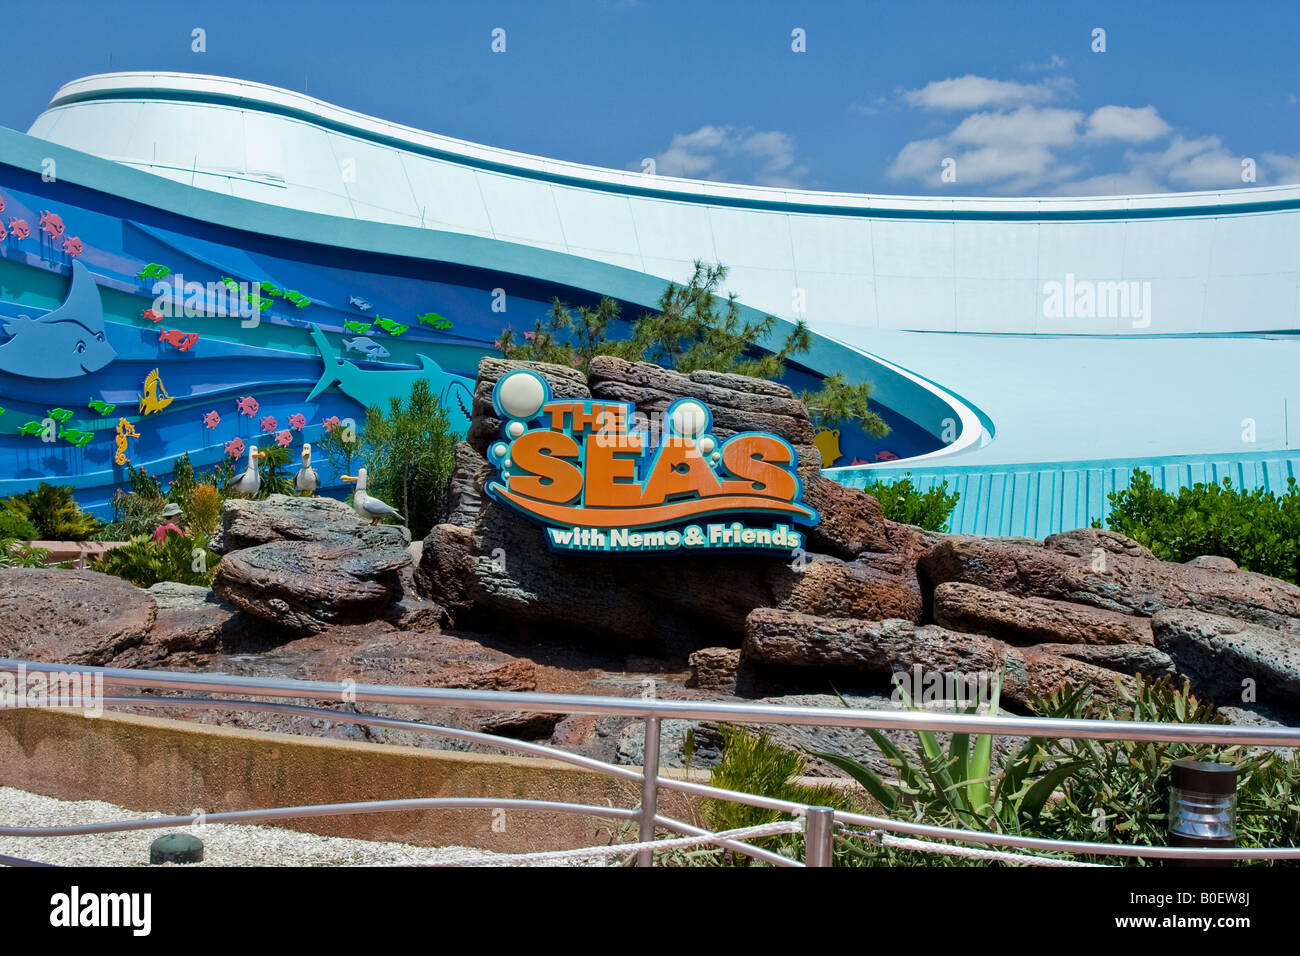 the seas with nemo attraction sign at walt disney 39 s epcot theme park stock photo royalty free. Black Bedroom Furniture Sets. Home Design Ideas